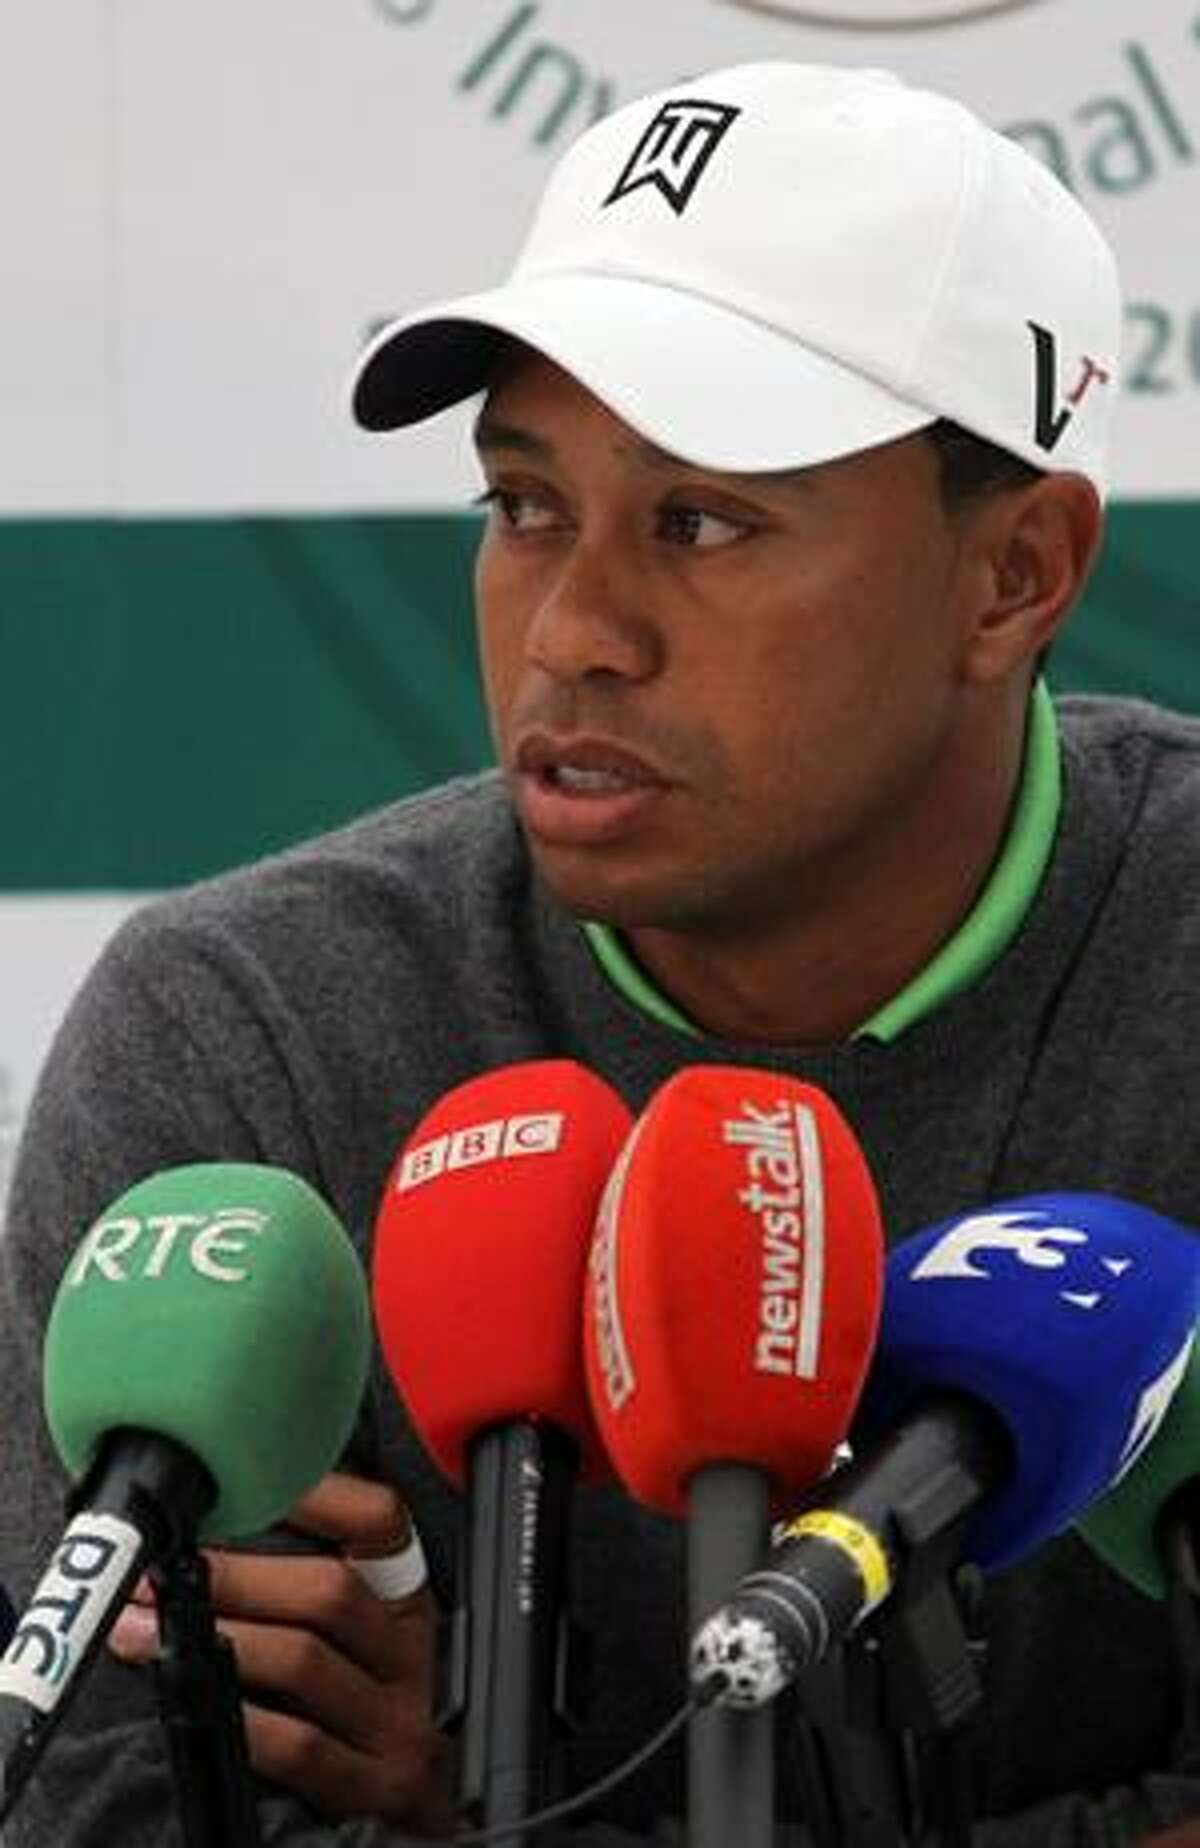 AP Tiger Woods speaks to the media after playing in the JP McManus Invitational Pro-Am at Adare Manor, Limerick, Ireland, Tuesday.